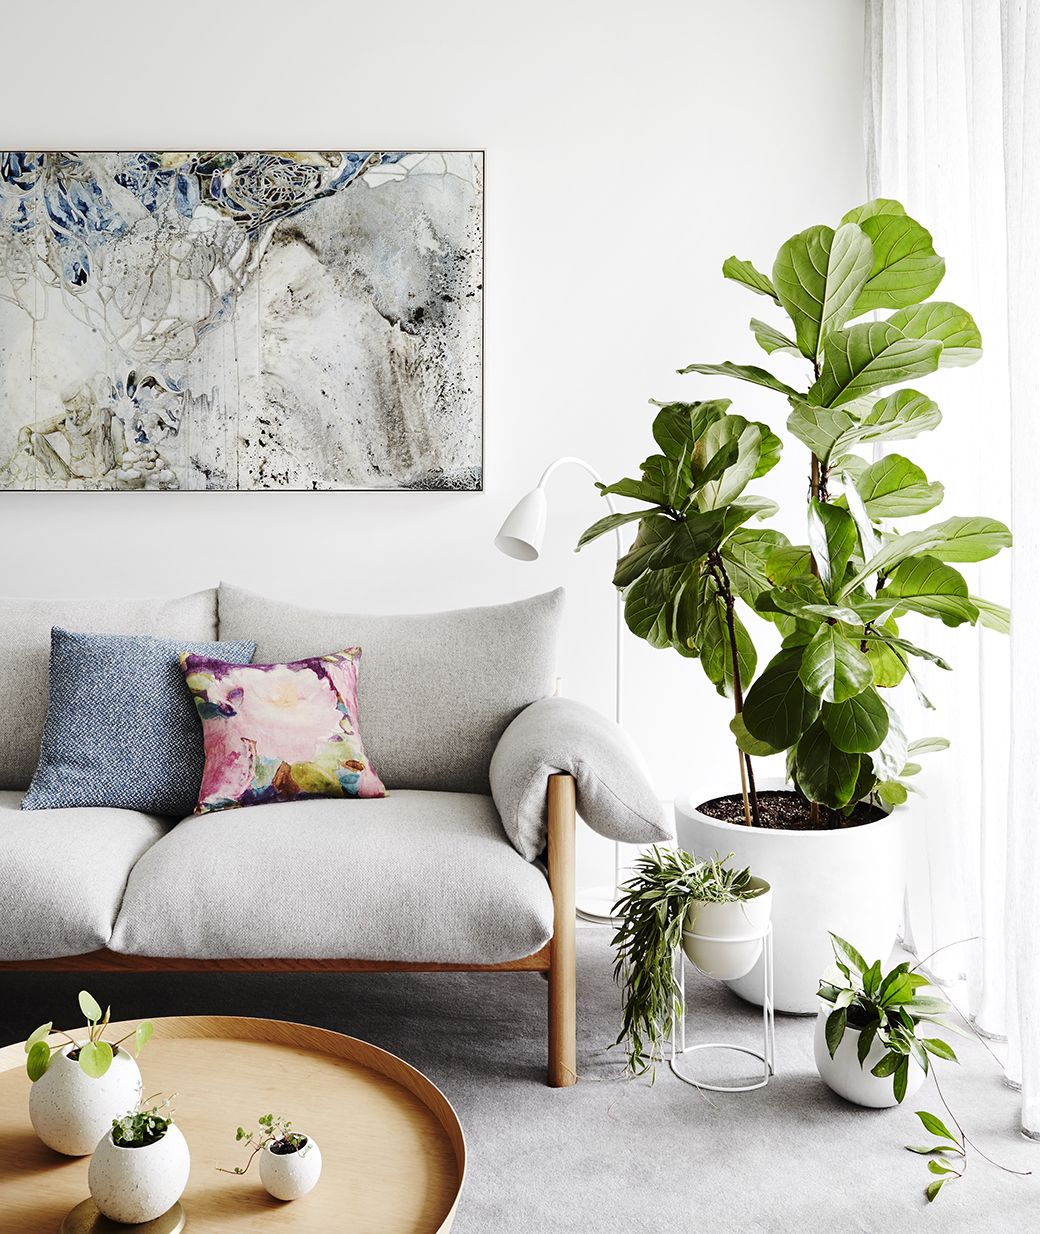 8 Stylish Ways To Decorate + Live With Plants - Page 39 of Plant Style